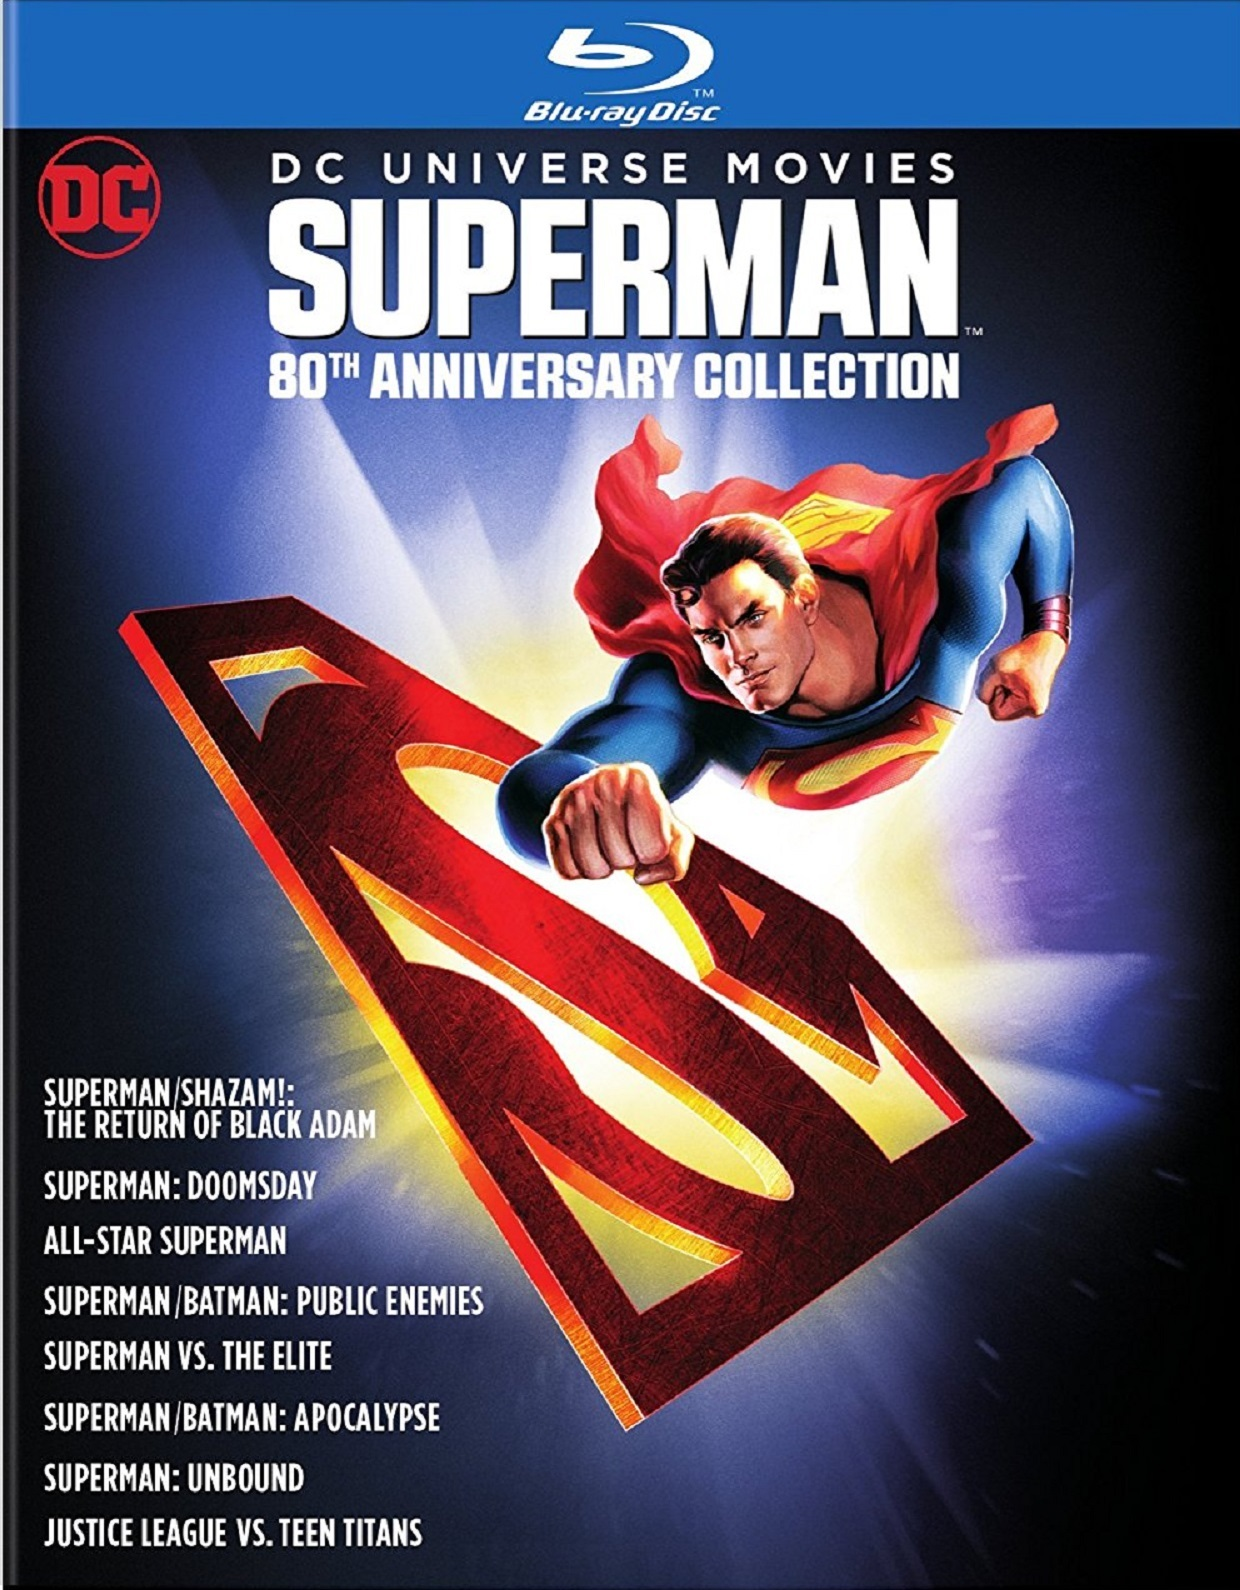 DC Universe Movies Superman 80th Anniversary Collection (2007-2016) Blu-ray